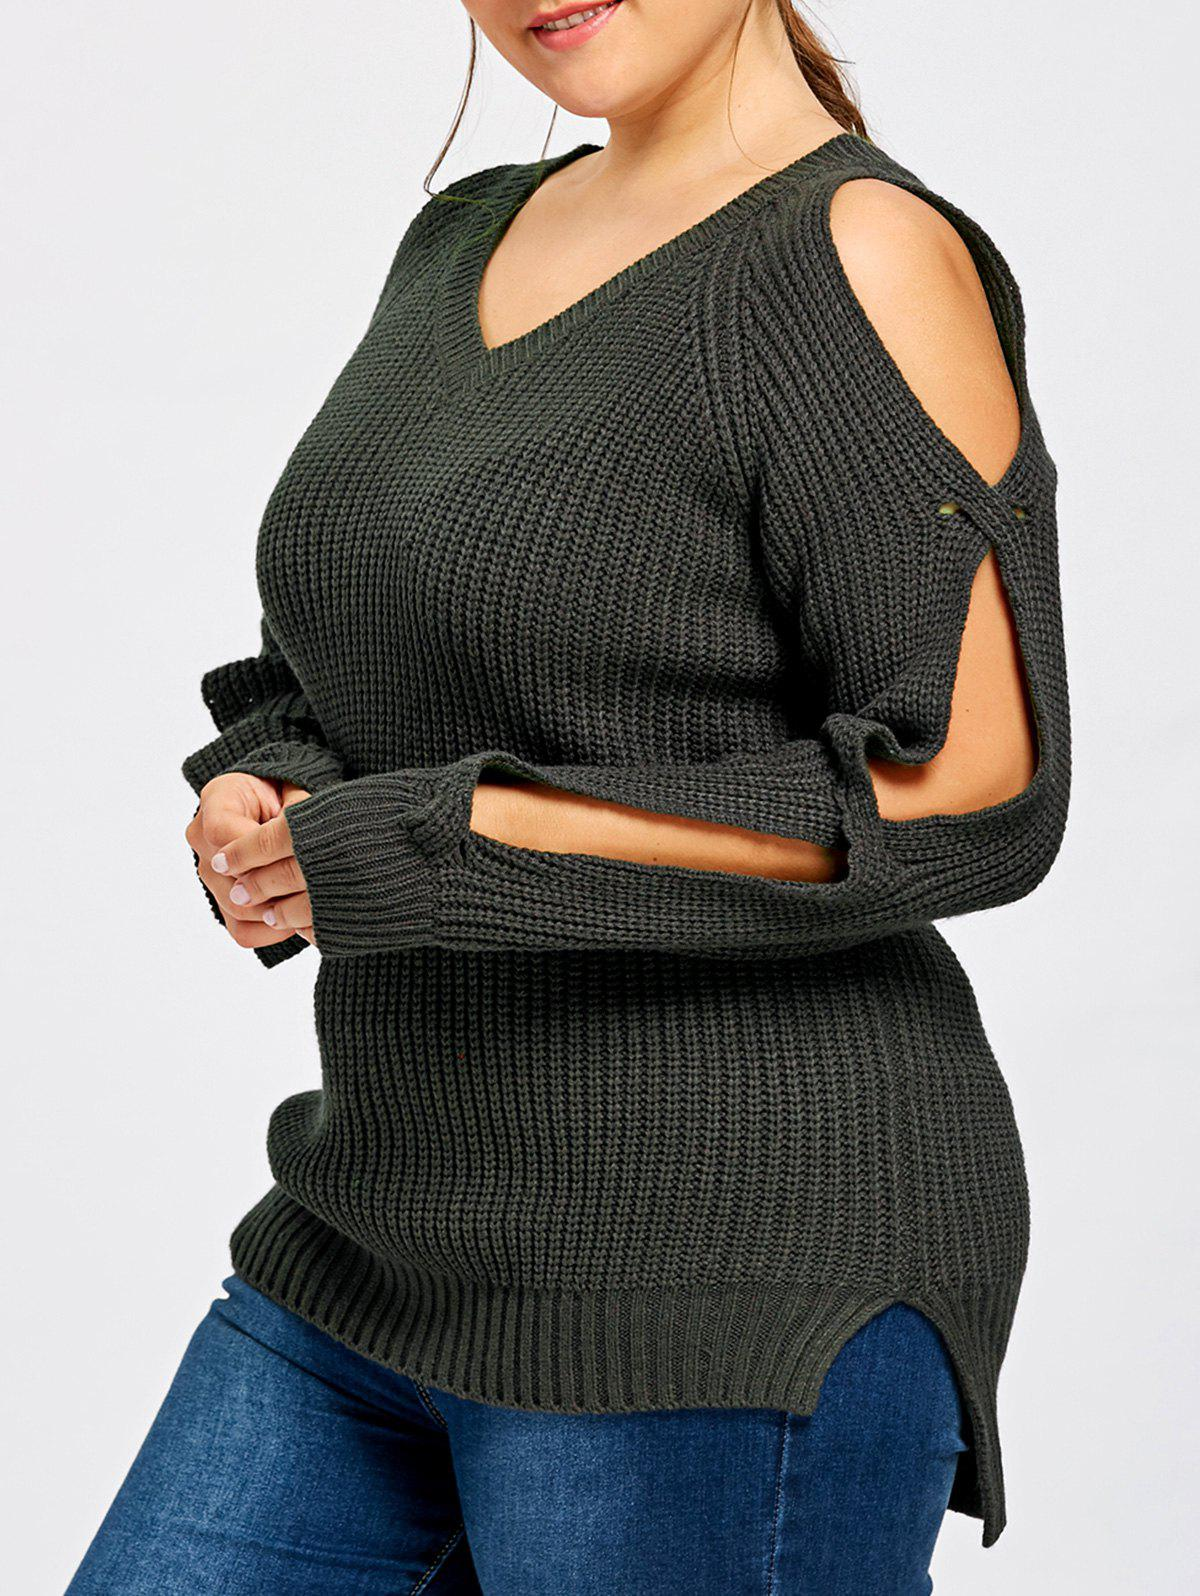 Plus Size Split Sleeve V Neck SweaterWOMEN<br><br>Size: 3XL; Color: BLACK; Type: Pullovers; Material: Polyester,Spandex; Sleeve Length: Full; Collar: V-Neck; Style: Casual; Season: Fall,Spring,Winter; Pattern Type: Solid; Weight: 0.4500kg; Package Contents: 1 x Sweater;